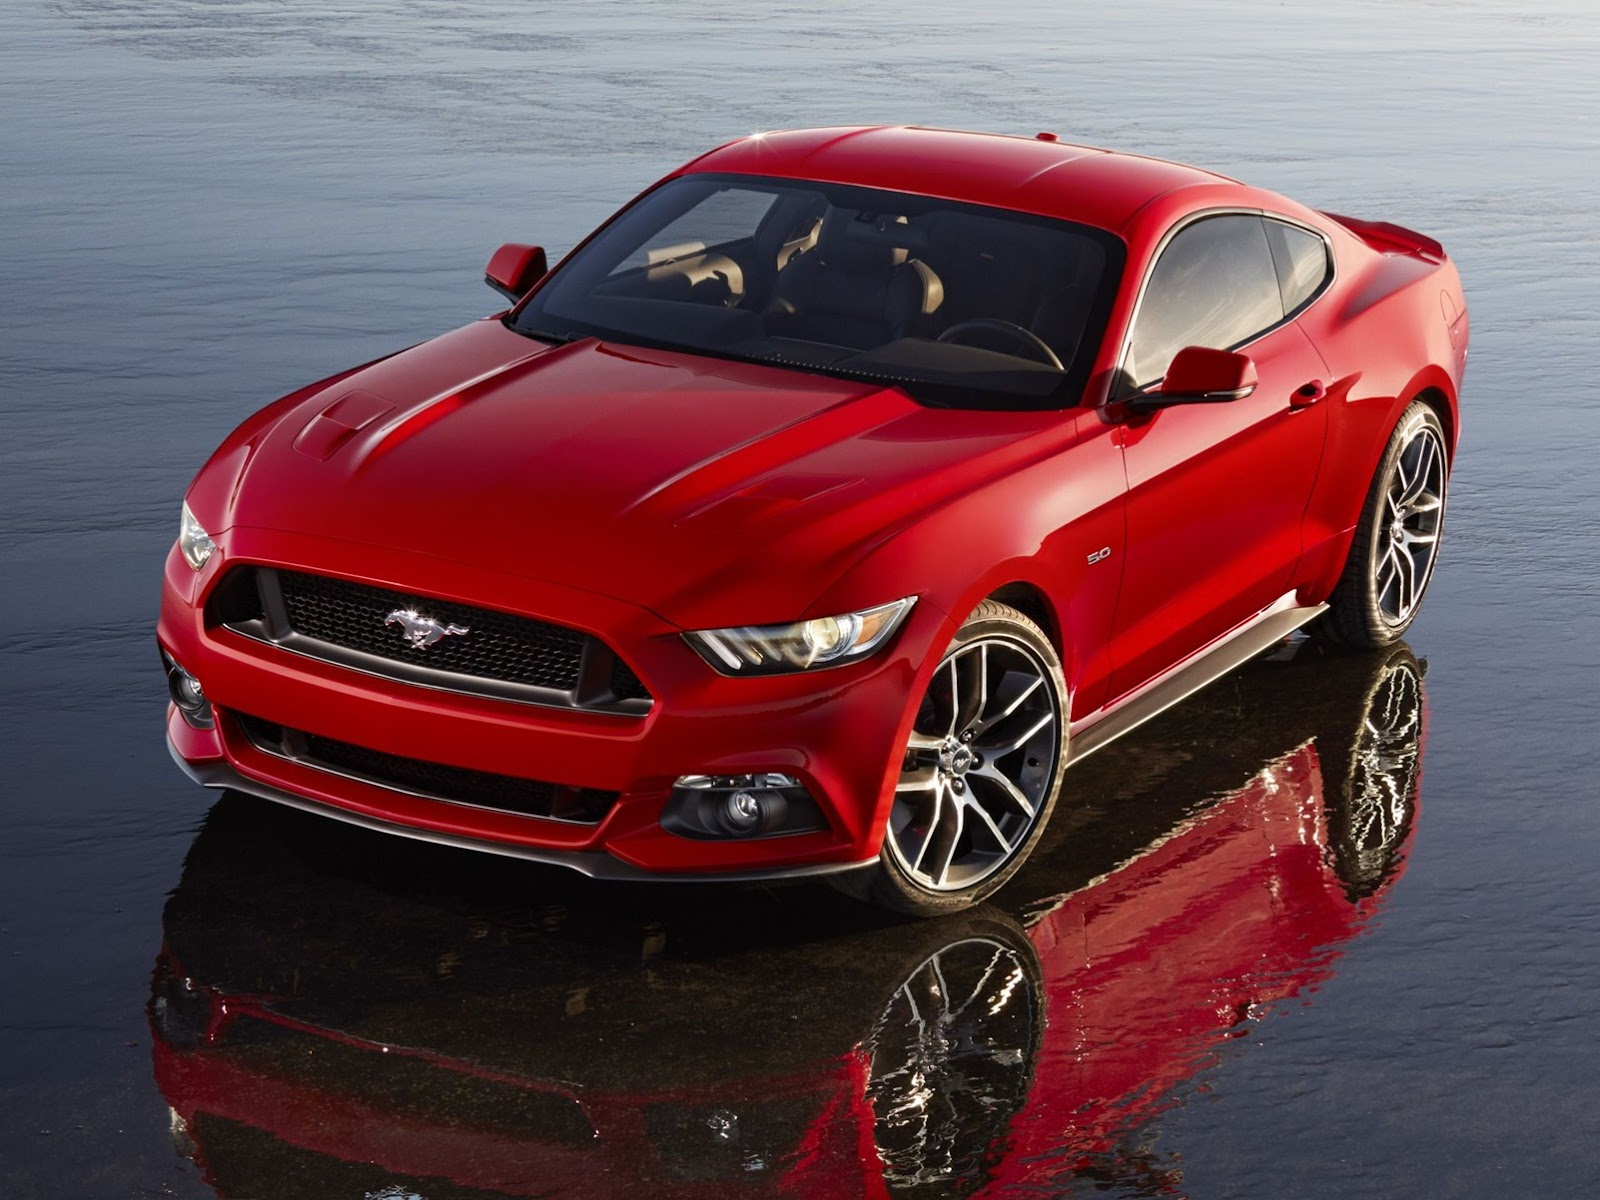 2015-Ford-Mustang-Photos-46%25255B2%25255D.jpg